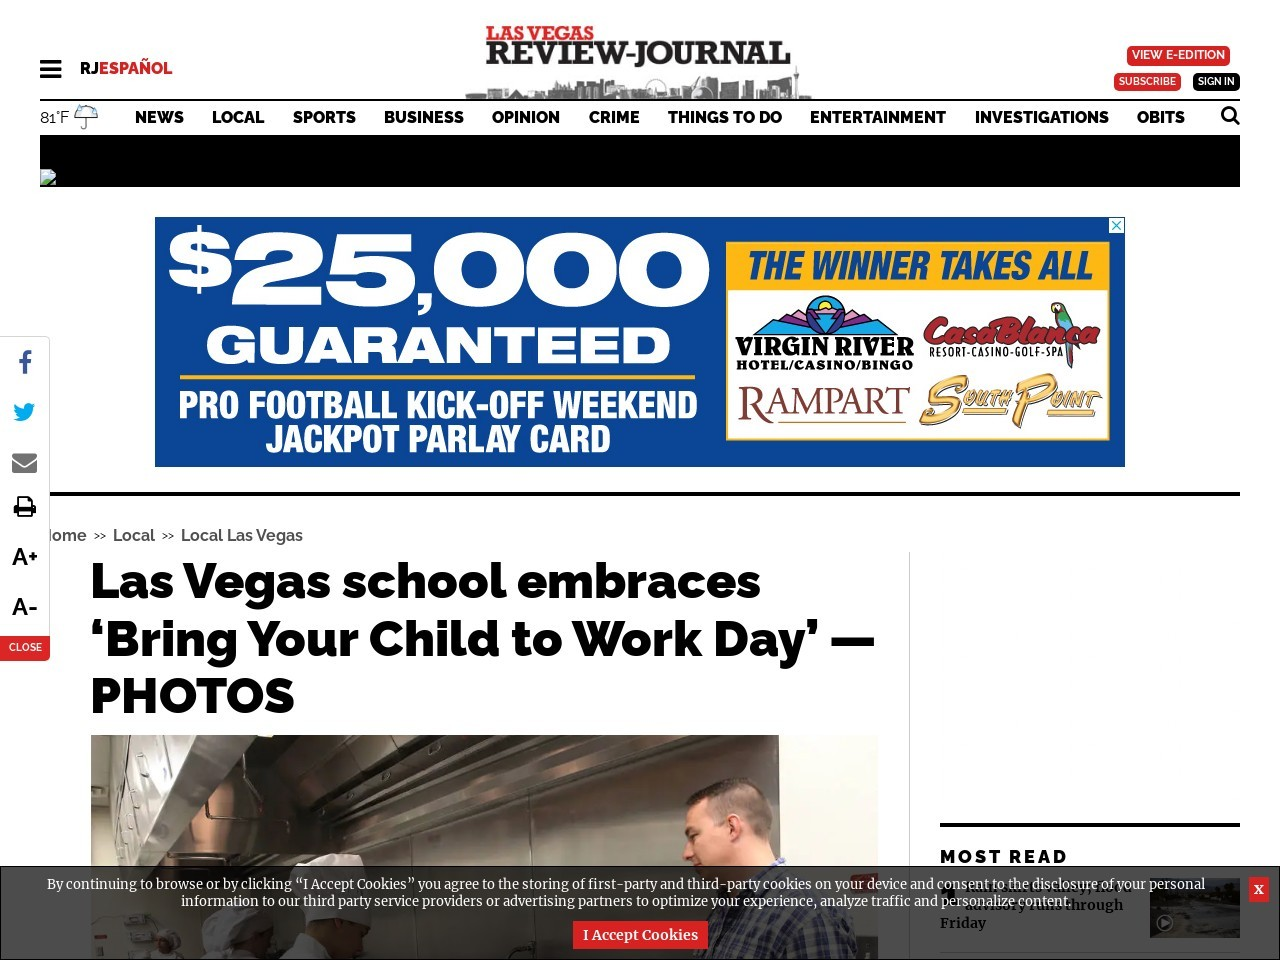 Las Vegas school embraces 'Bring Your Child to Work Day' — PHOTOS